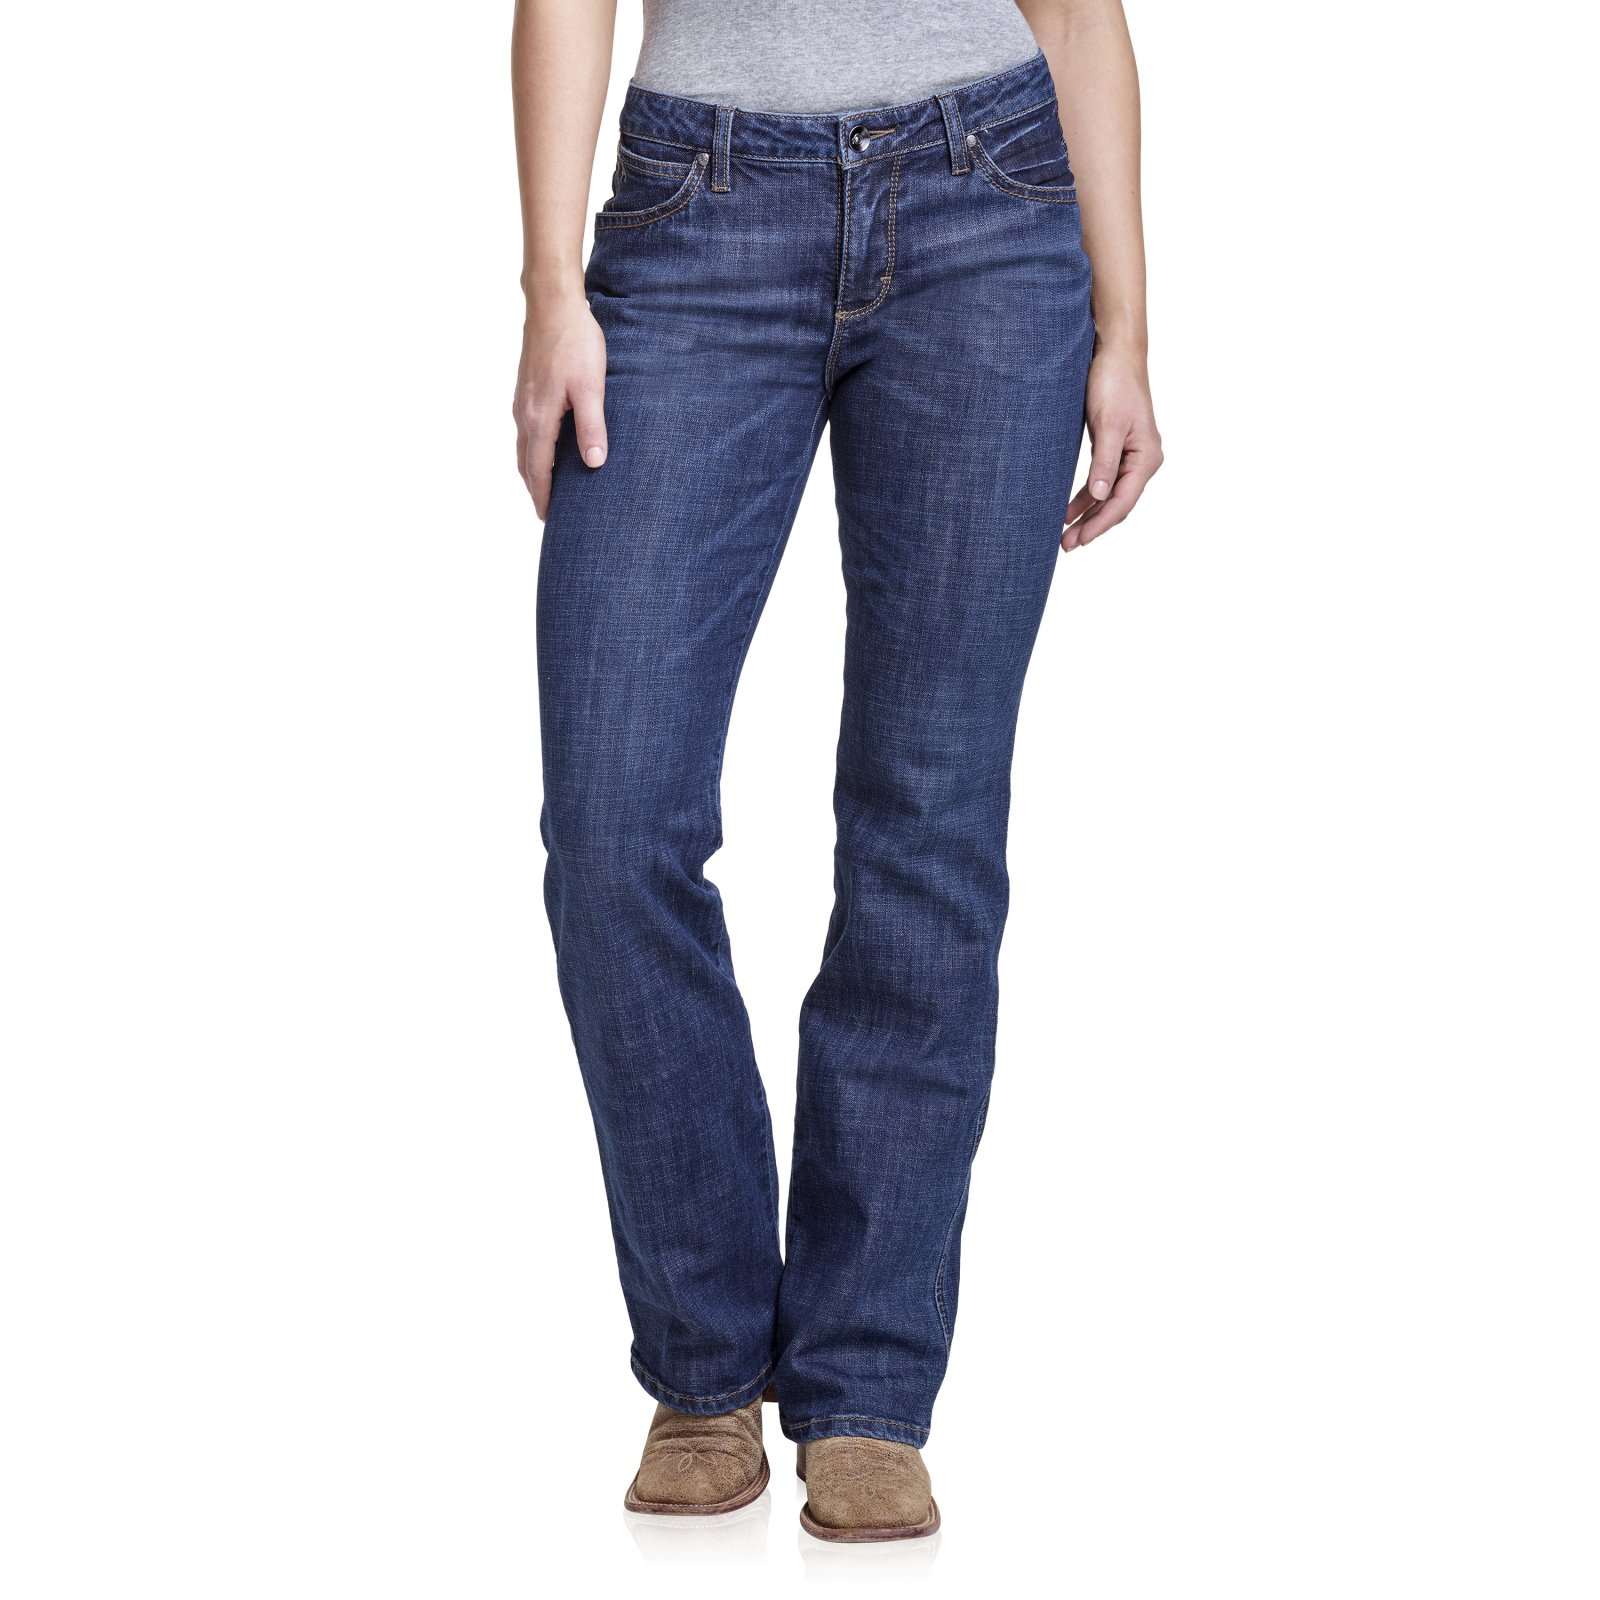 Aura Instantly Slimming Jean from Wrangler